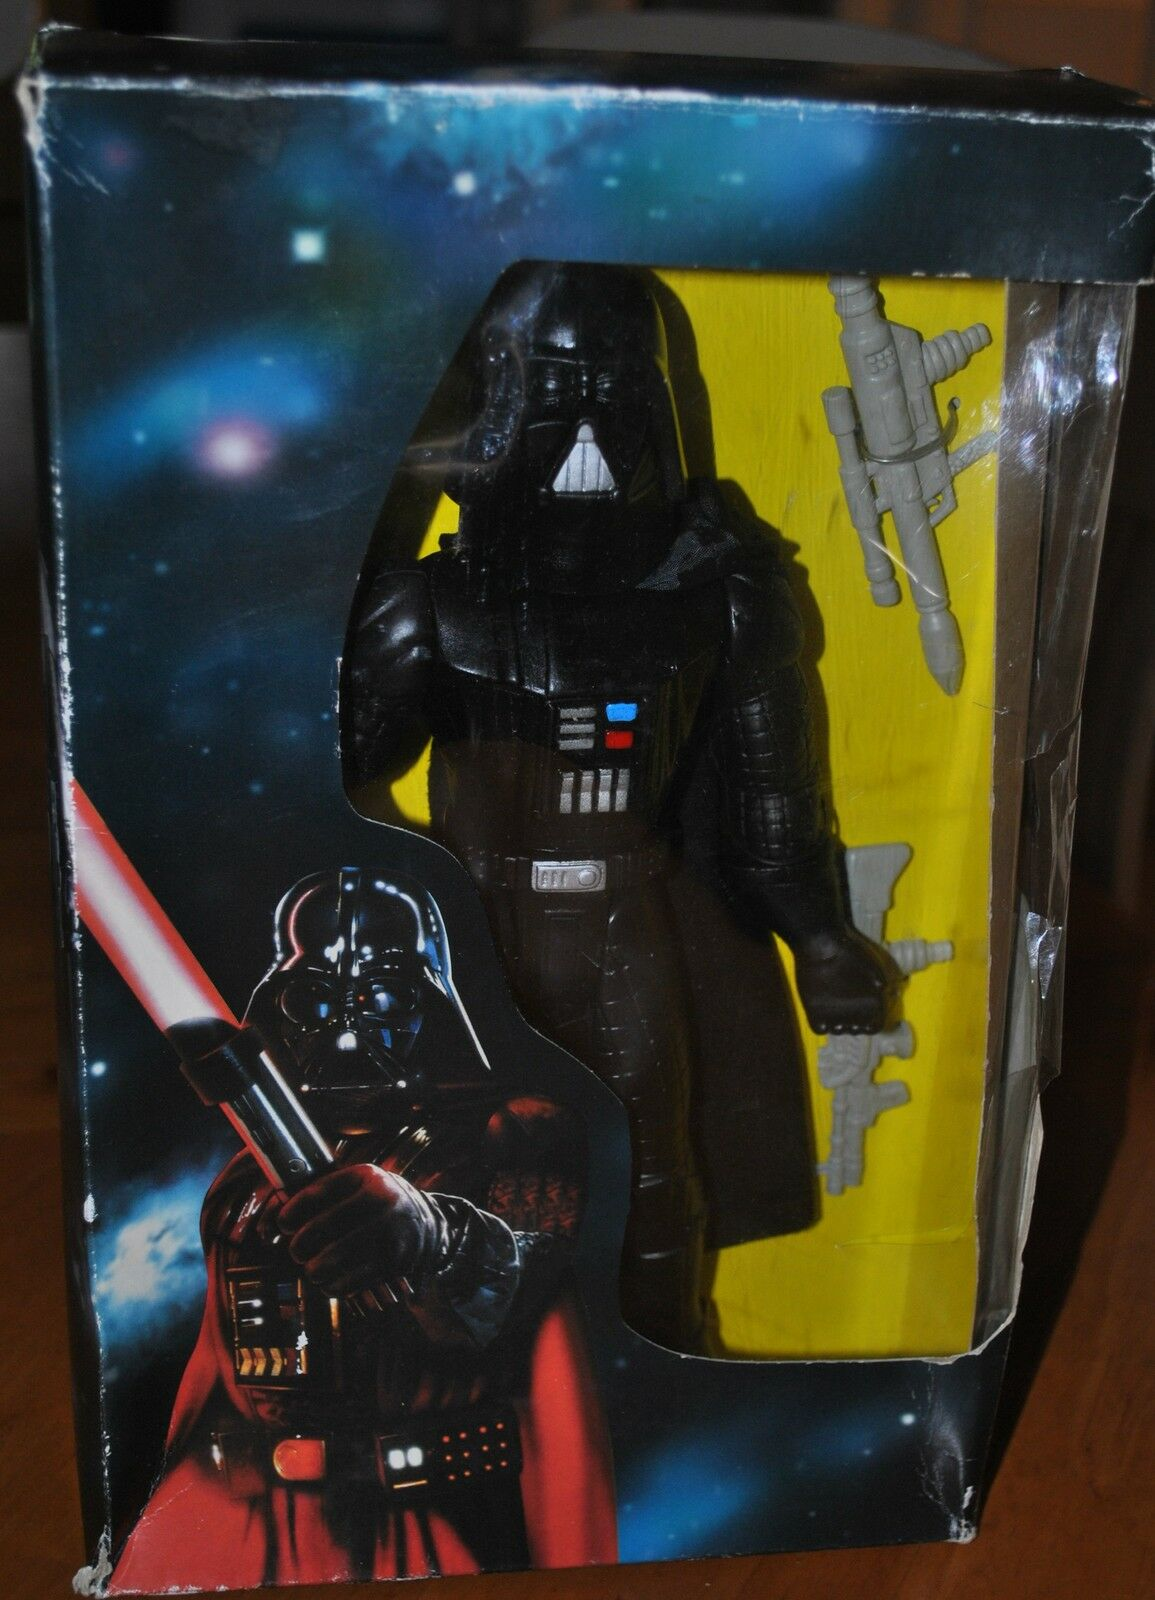 STAR WARS RARE DARTH VADER GOT IN MEXICO IN THE '90s EXTREMELY HARD TO FIND